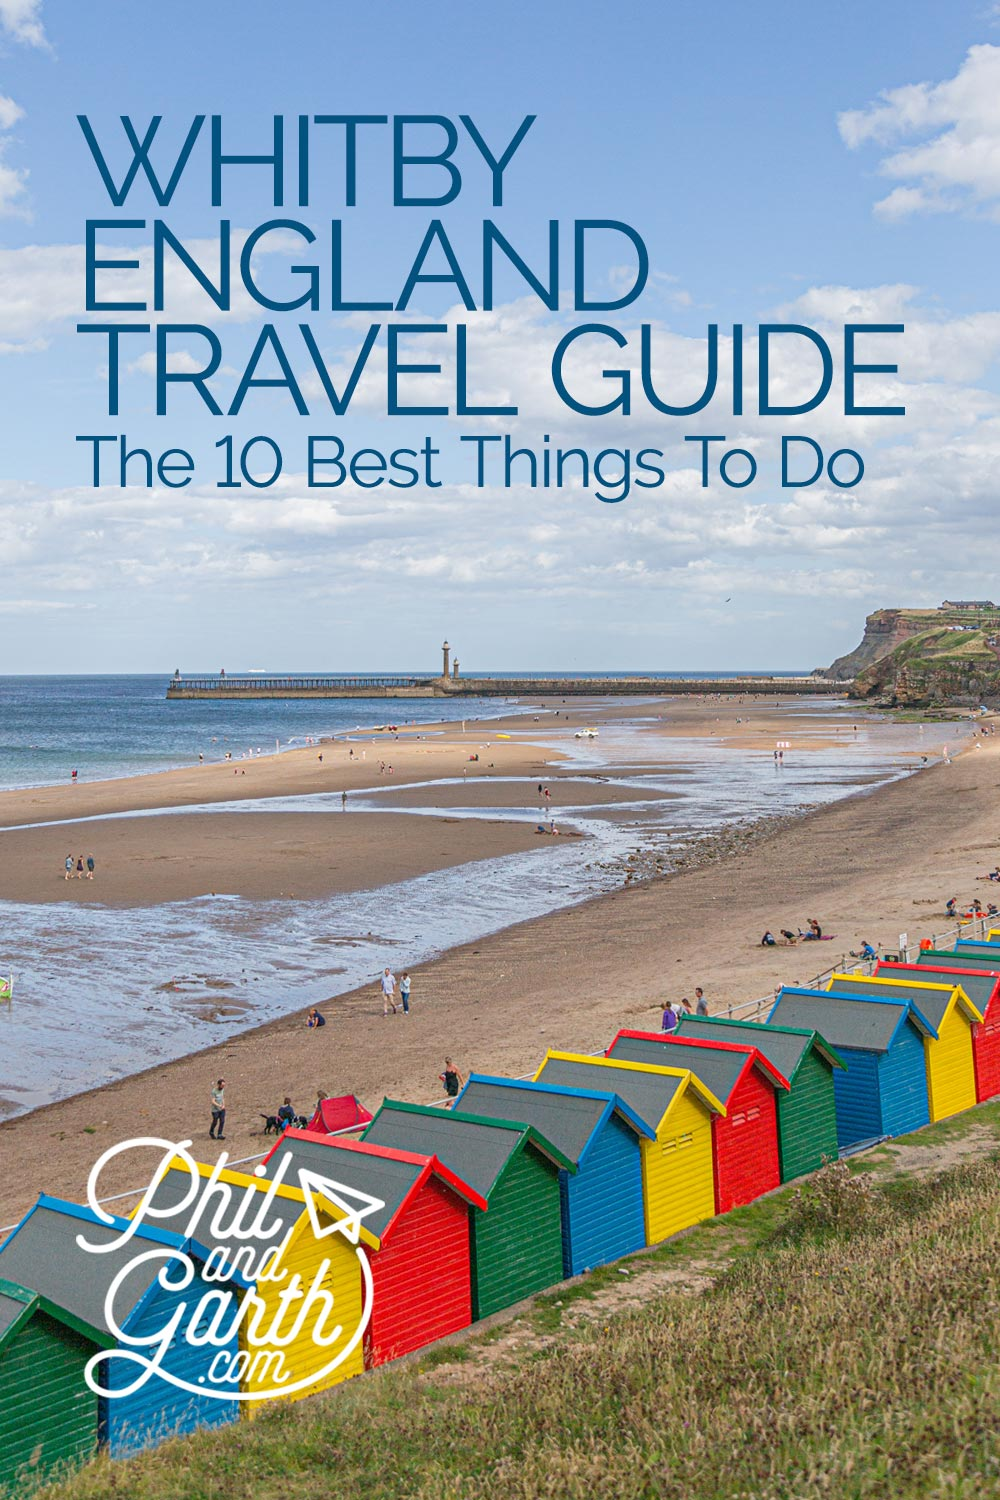 Top 10 Whitby Things To Do